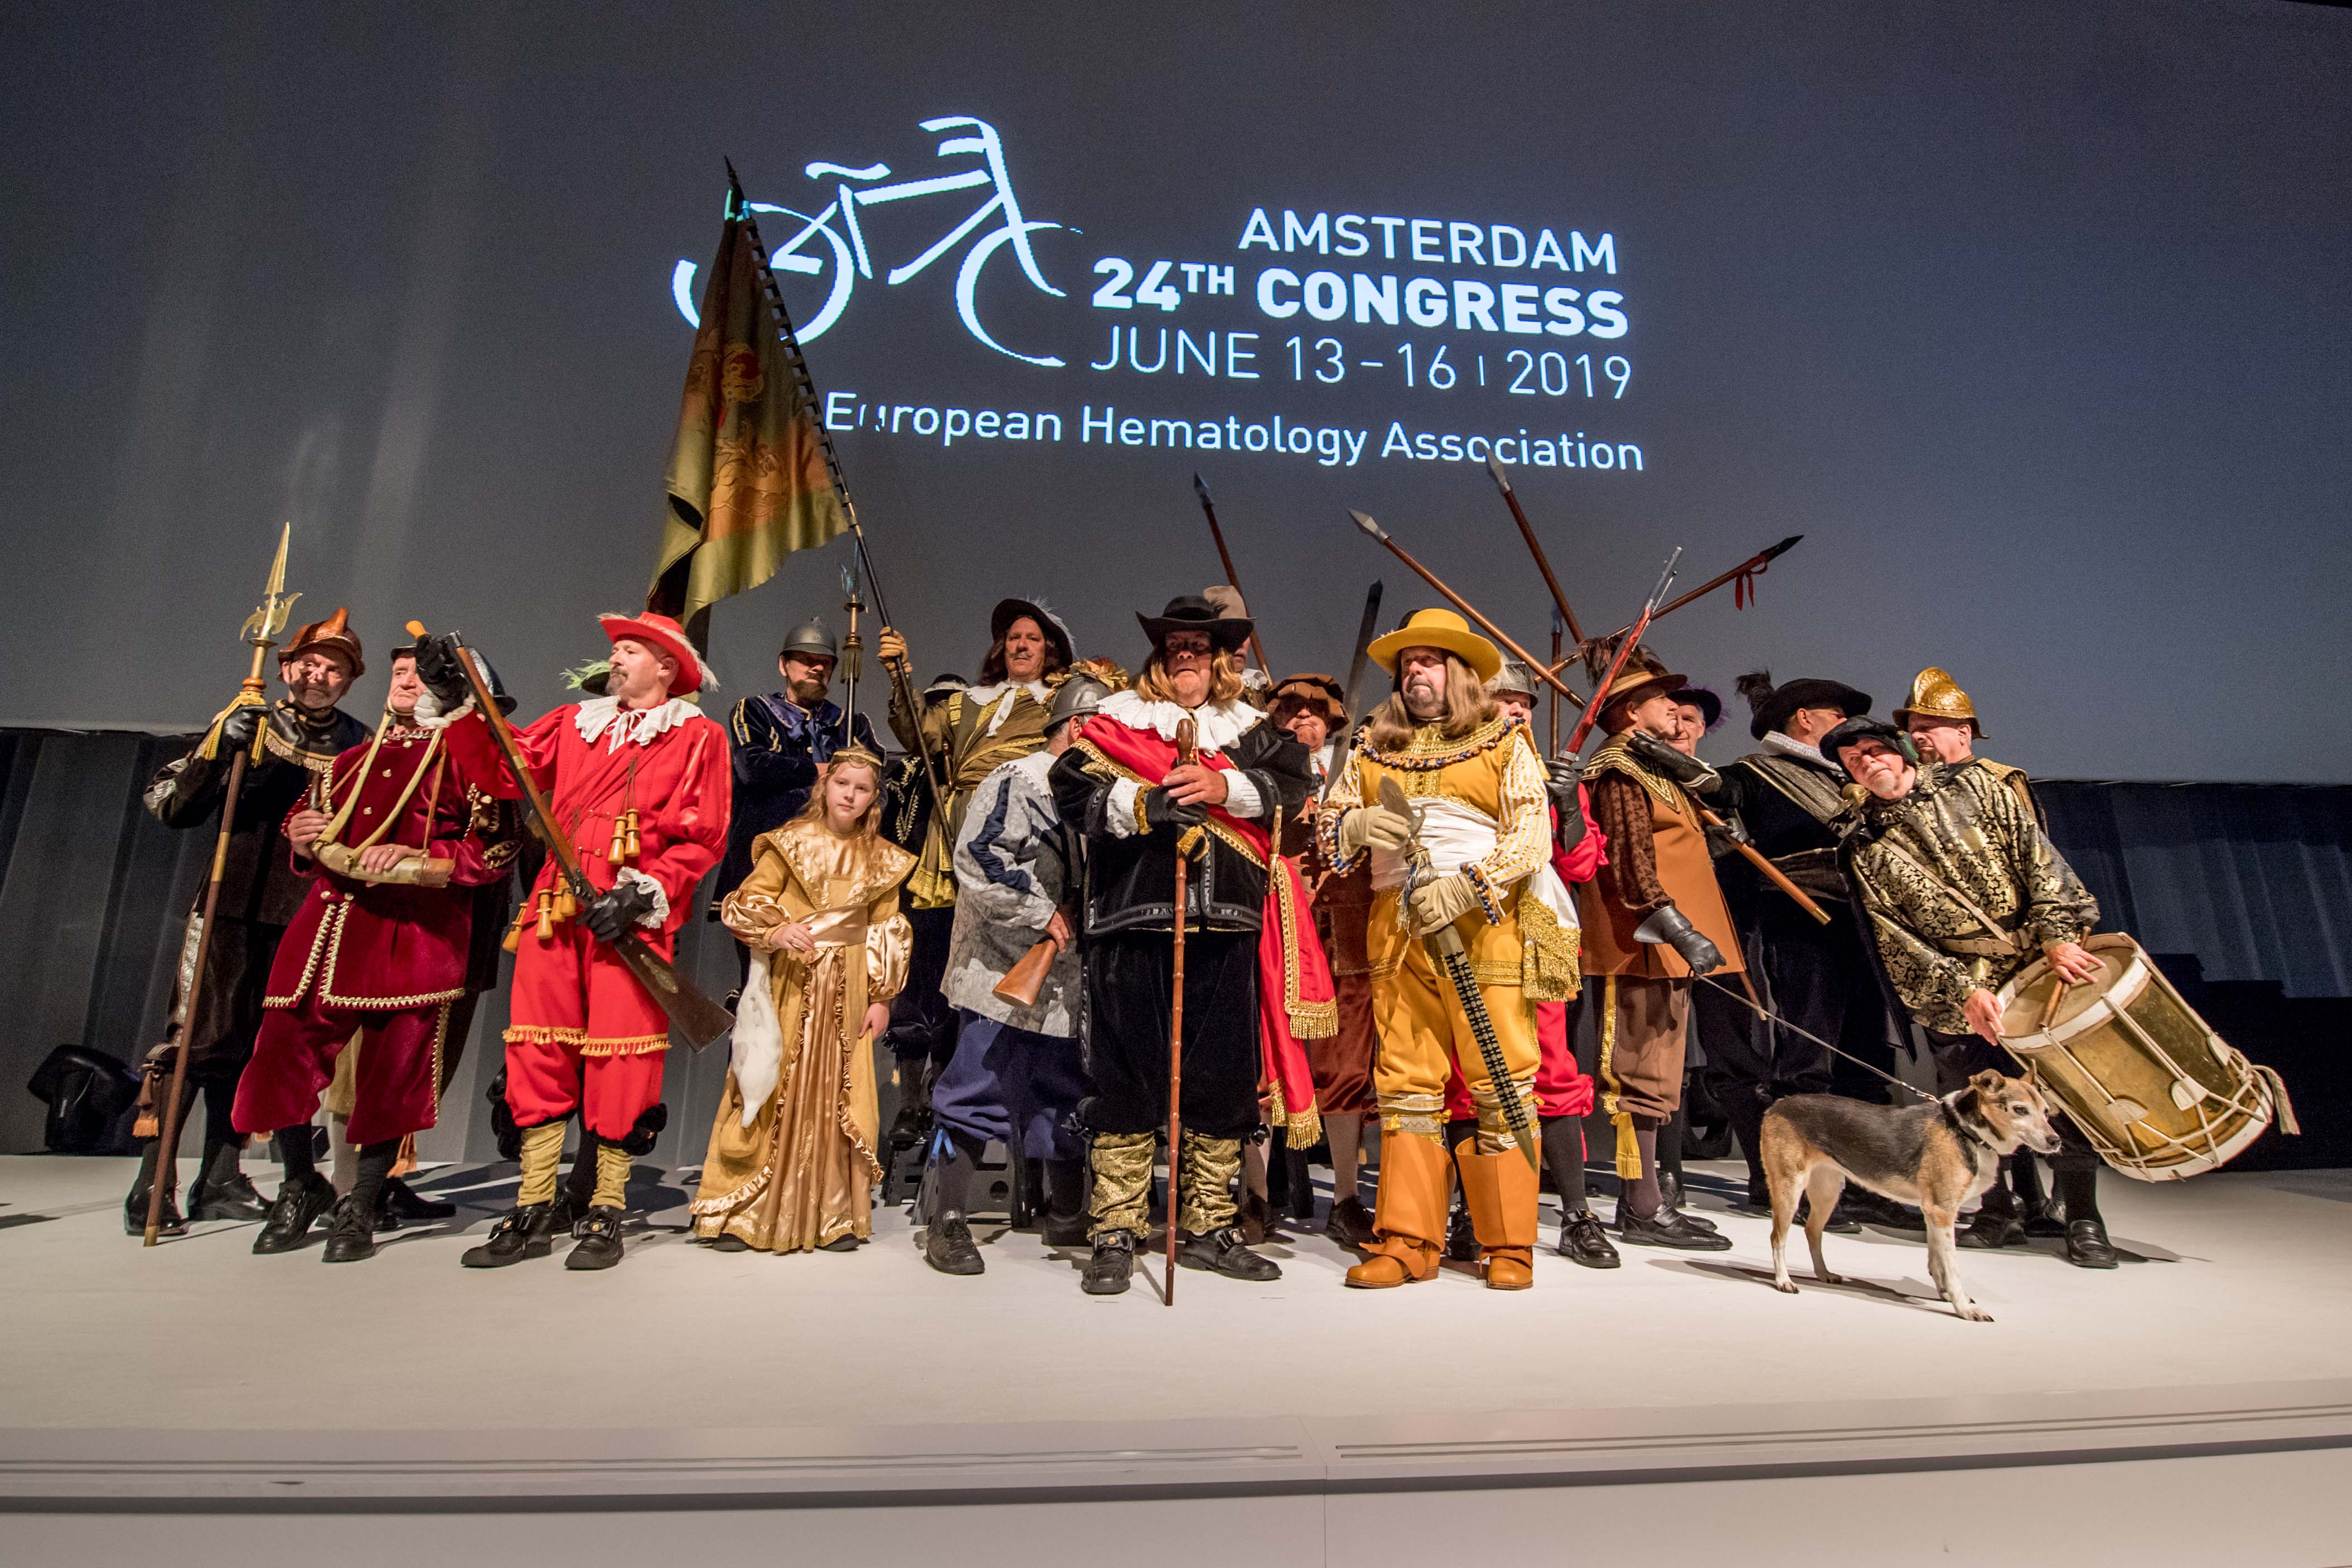 EHA Congress lived the Night Watch painting of Rembrandt